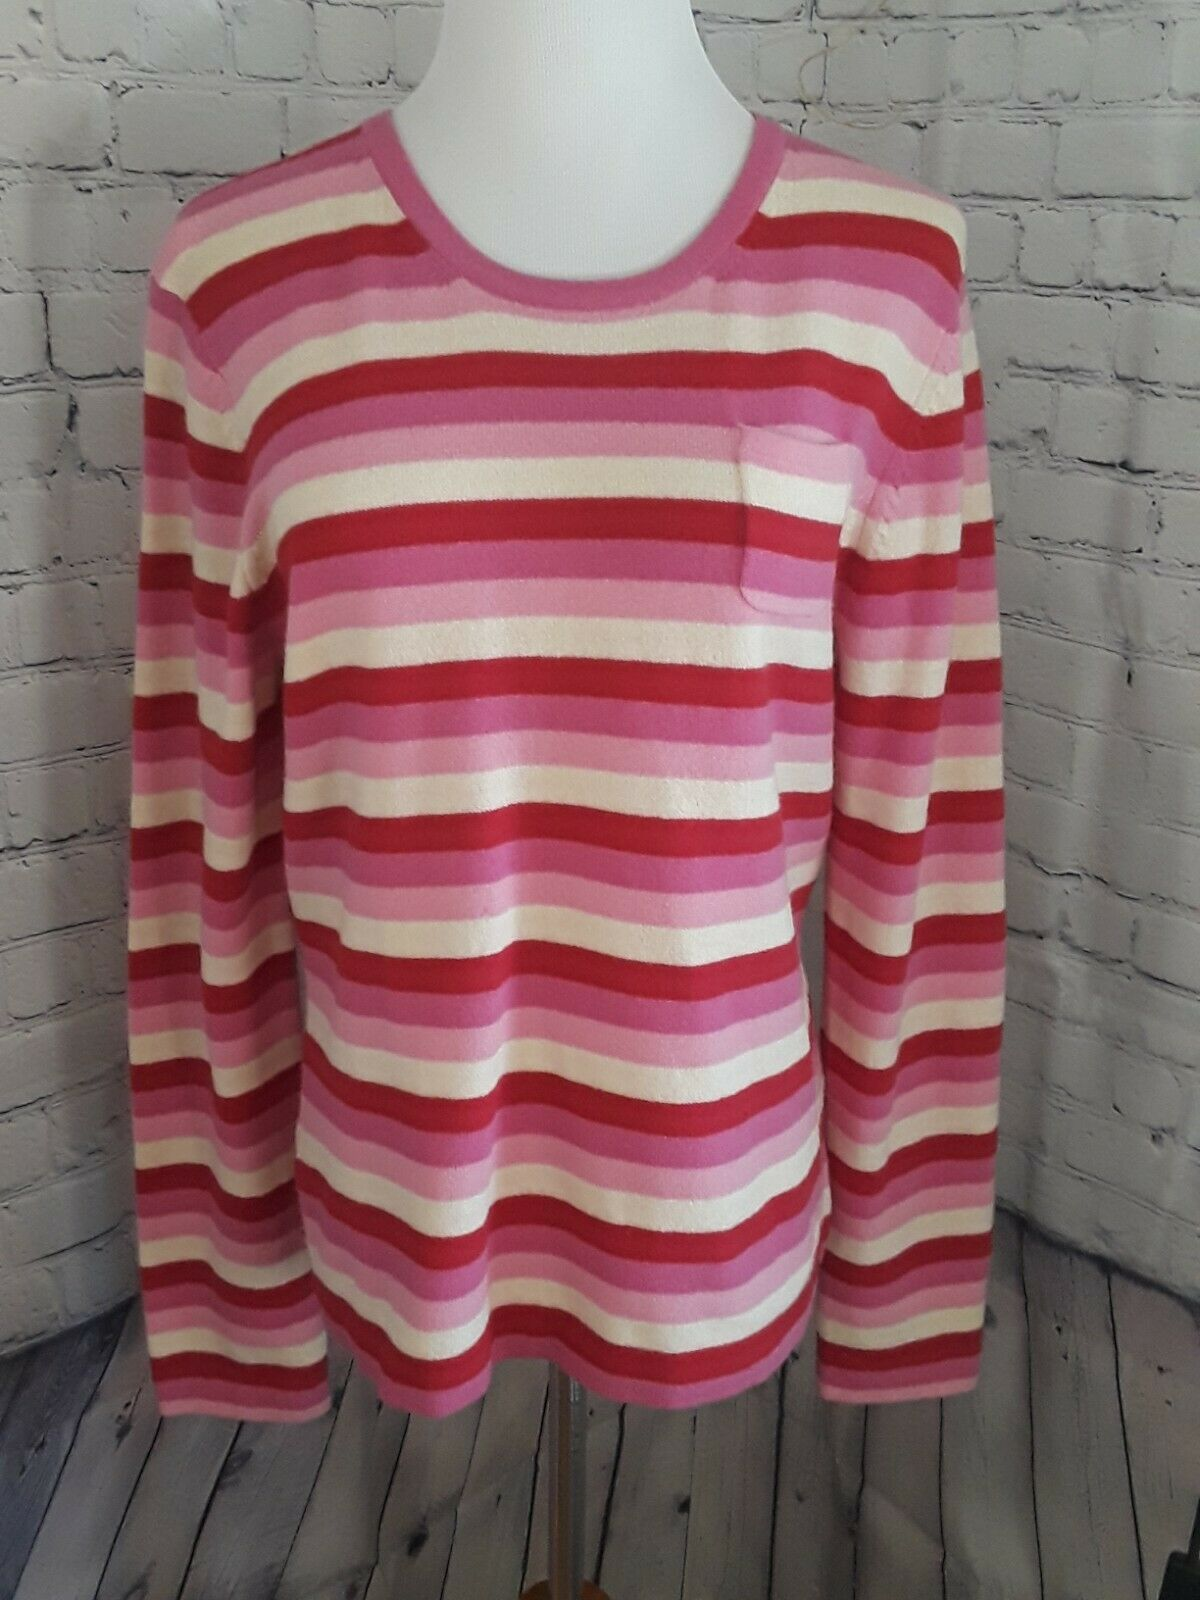 Womens Vintage 90s Gap Sweater Striped Lambswool Pink Red Cream sz L Pullover